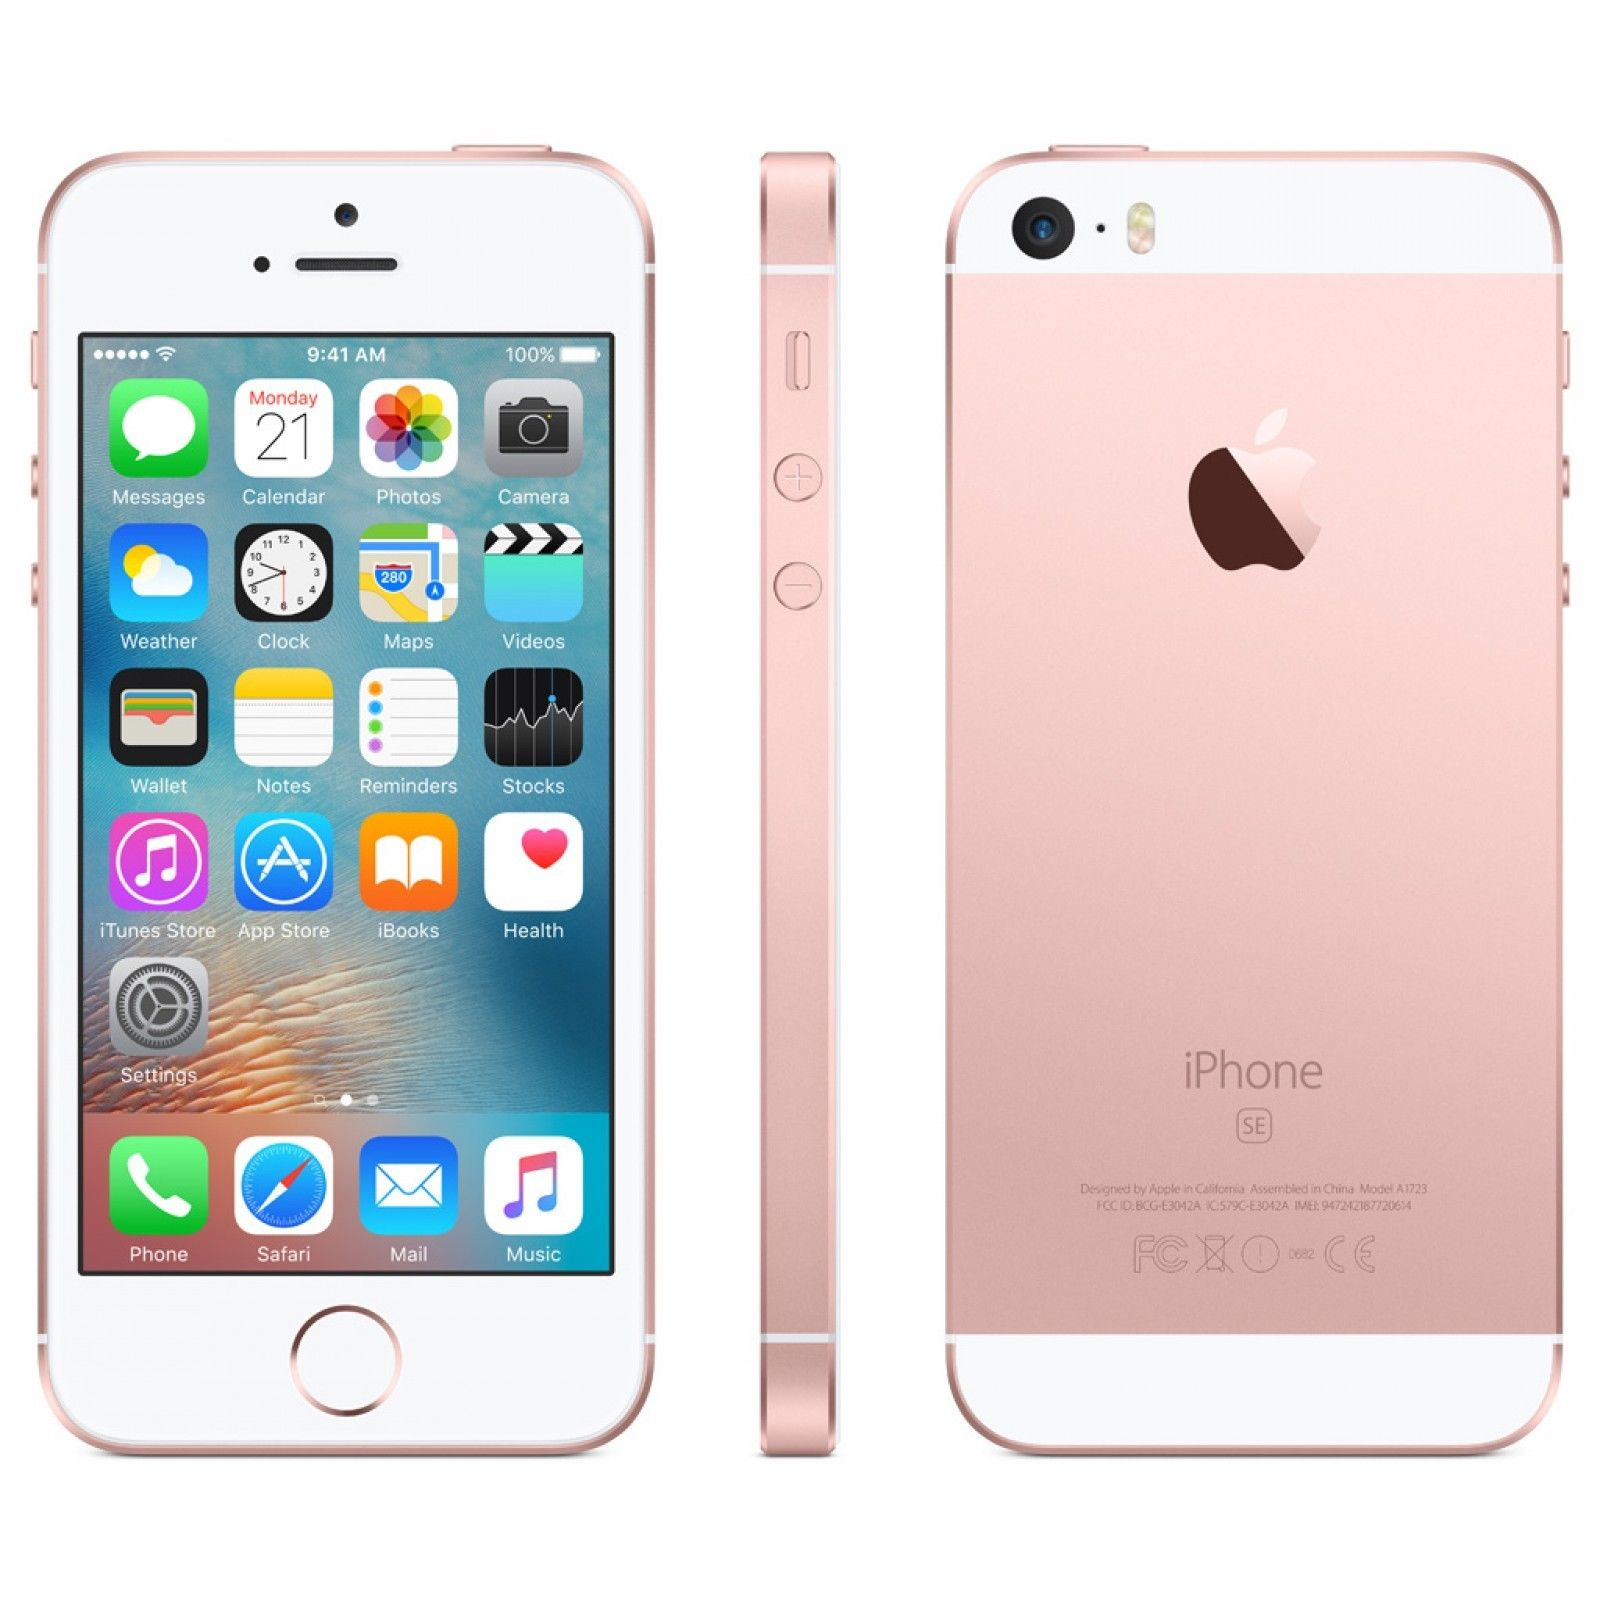 Apple iPhone SE - 64GB - Rose Gold (T-Mobile) A1662 (CDMA + GSM) | eBay